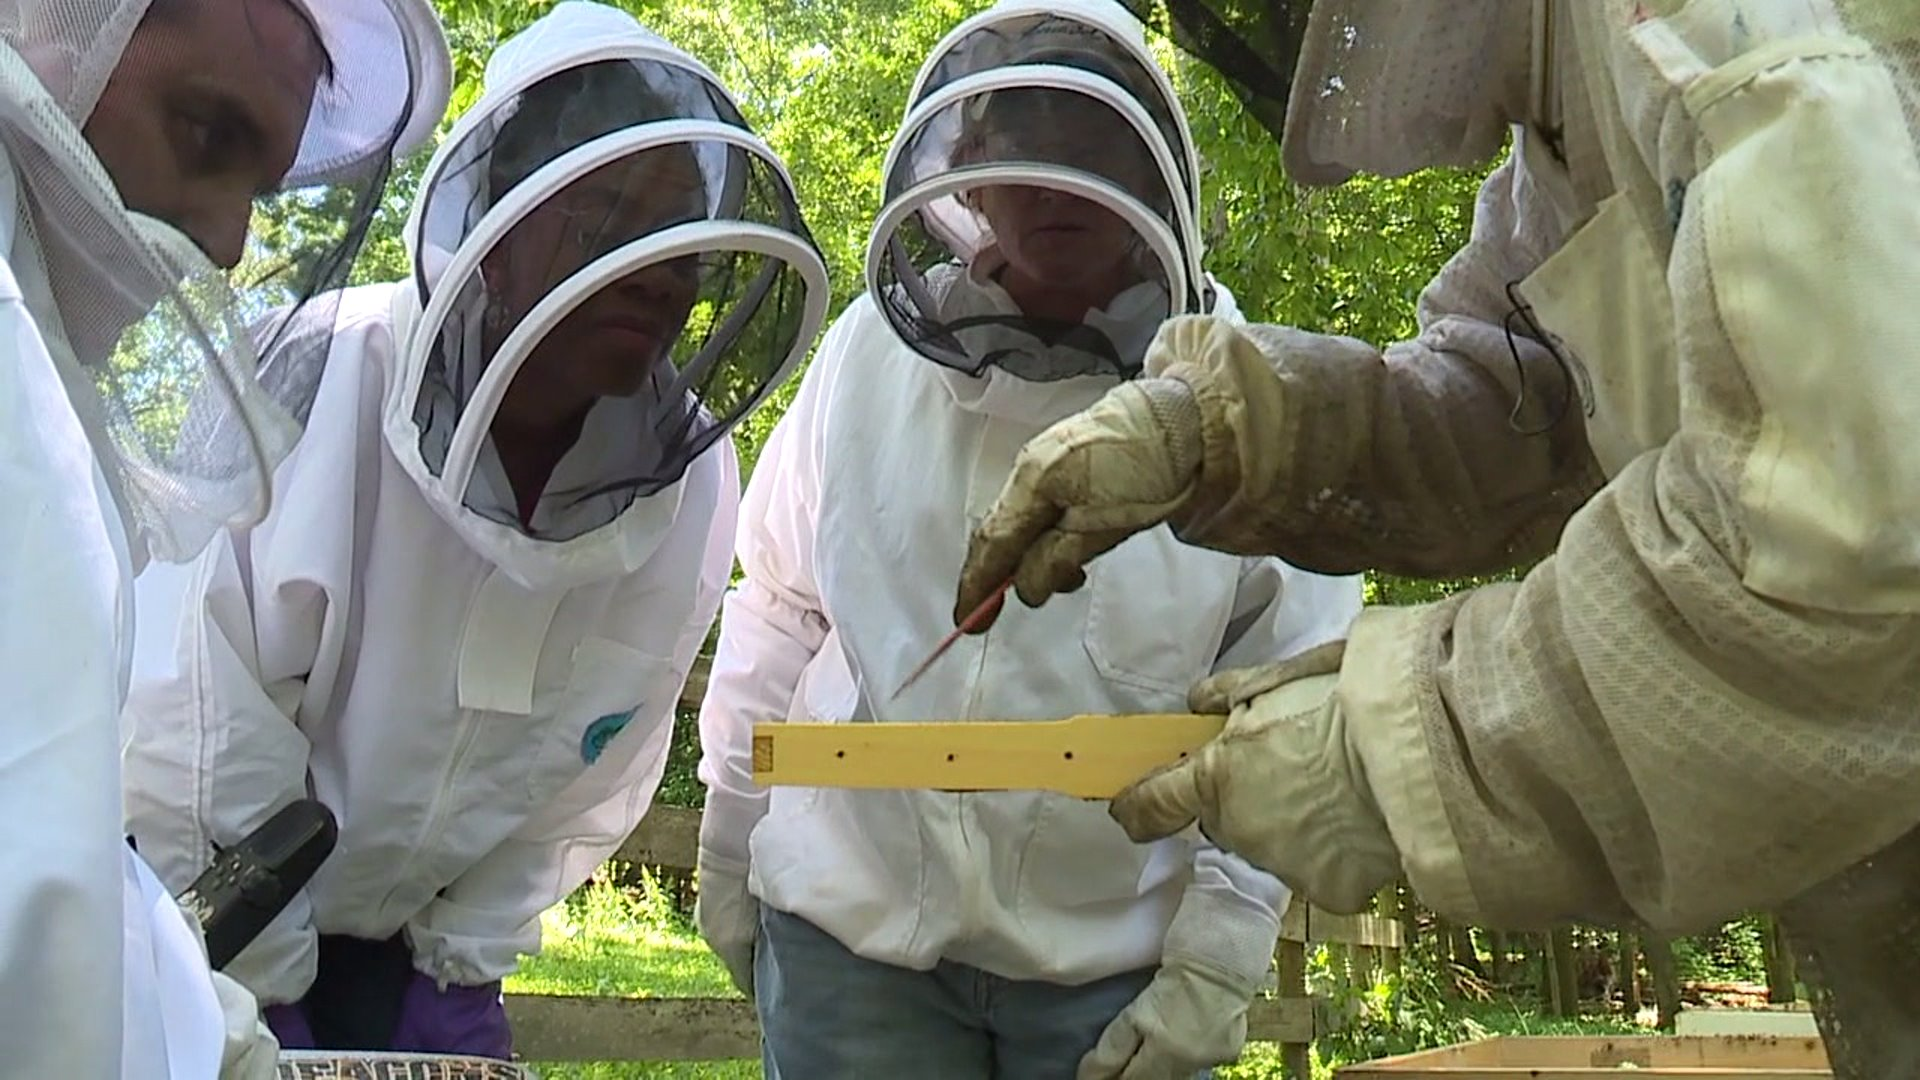 Beekeeper offers free classes to promote inclusion in the industry